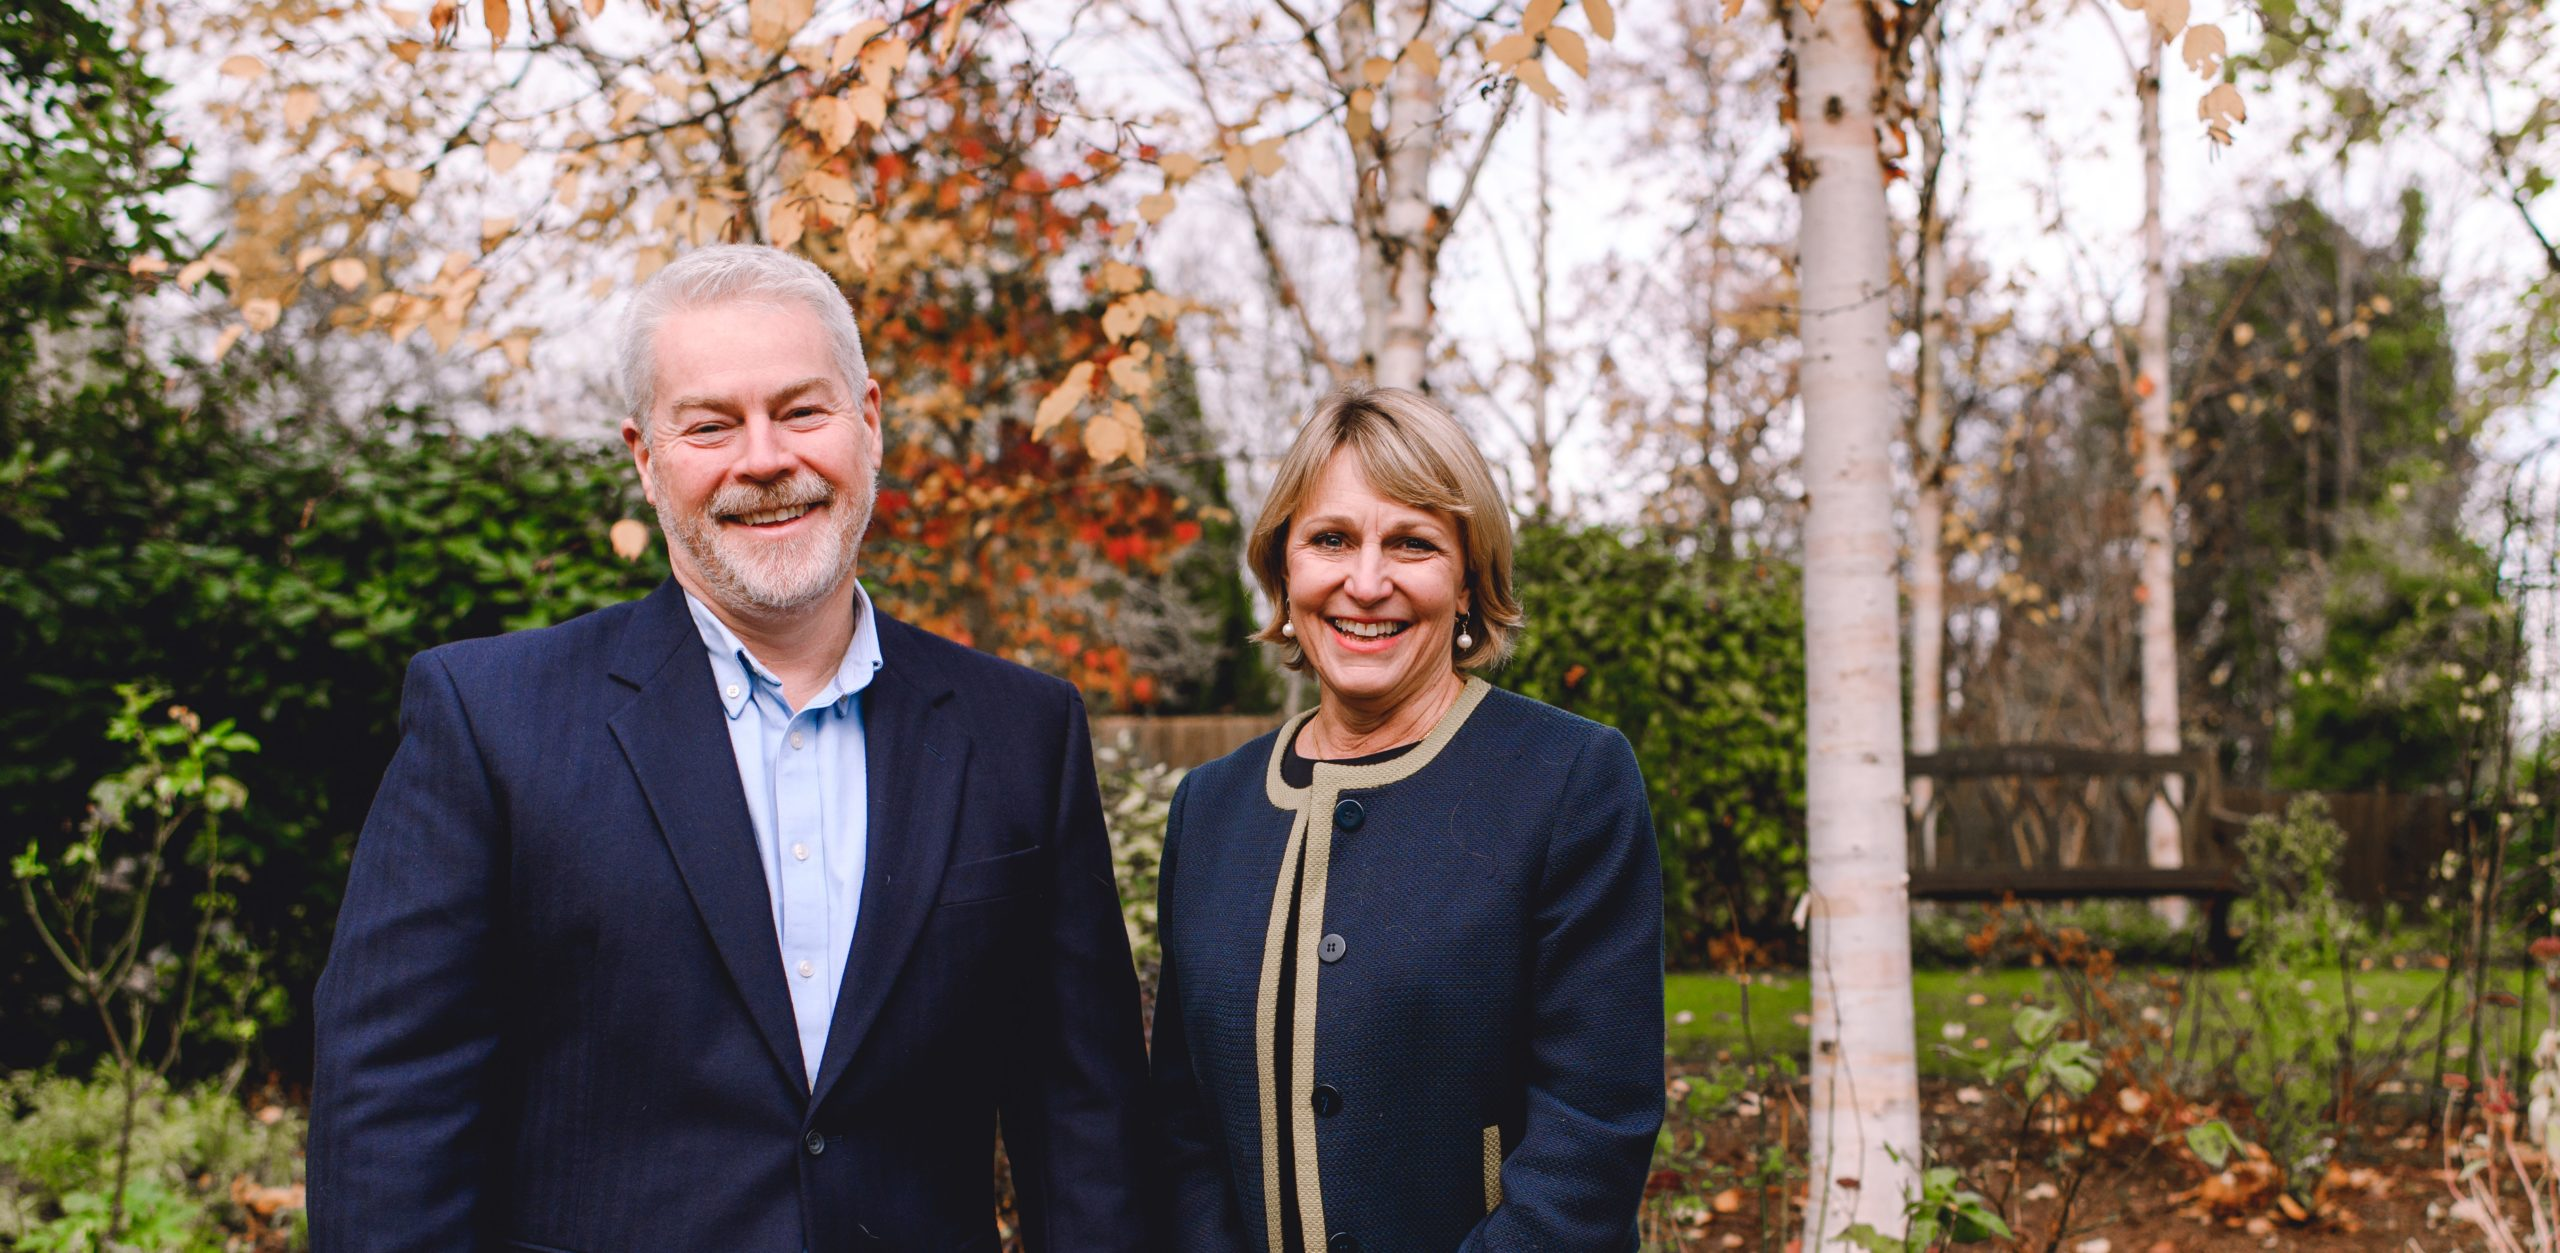 Shaun O'Leary and Heather Richardson to leave Joint Chief Executive role at St Christopher's Hospice